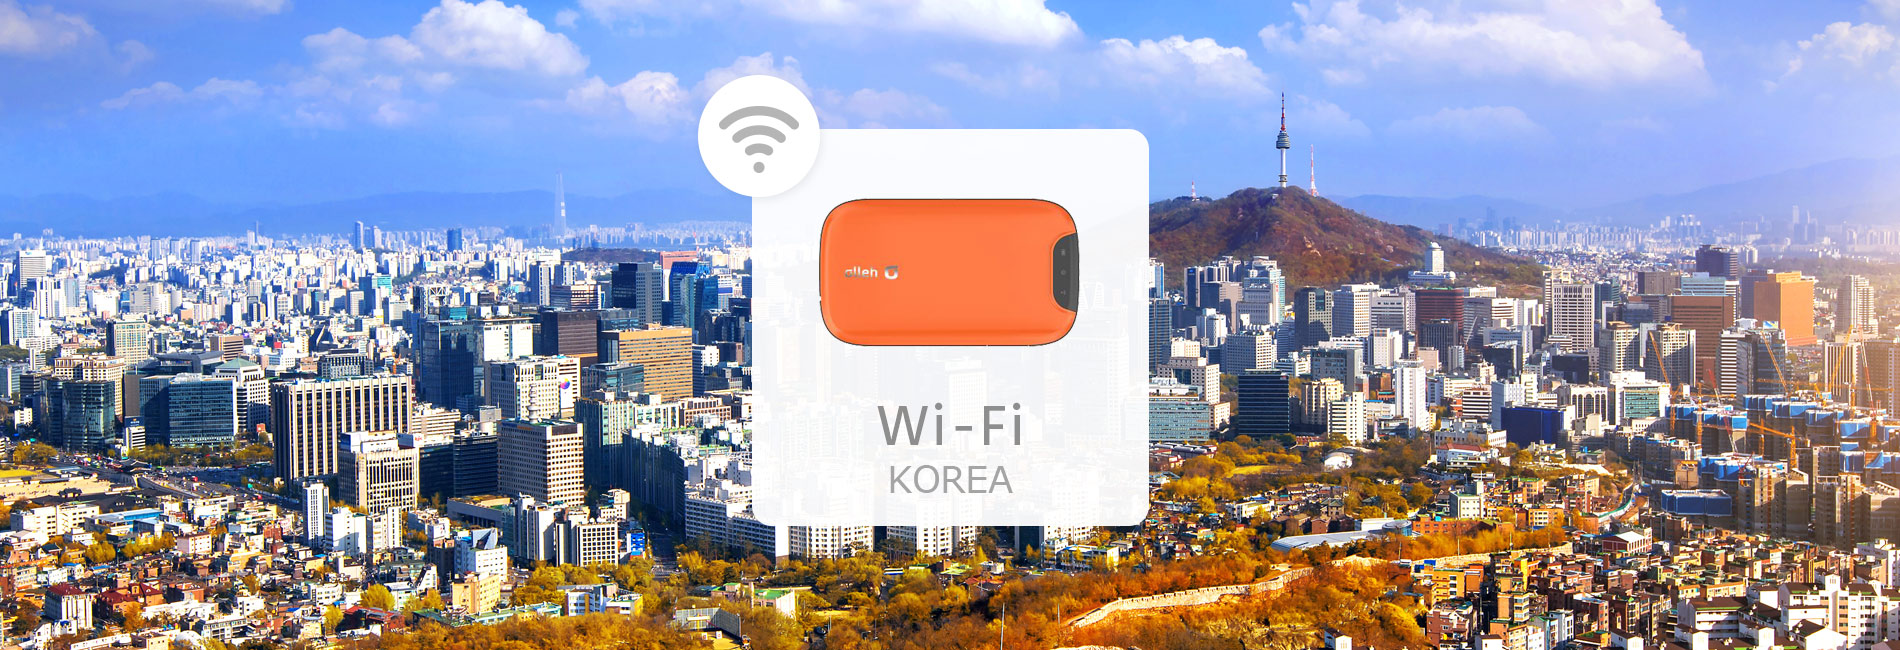 South Korea Unlimited 4G Portable Wi-Fi Rental (Pick-Up at Korea Airports)